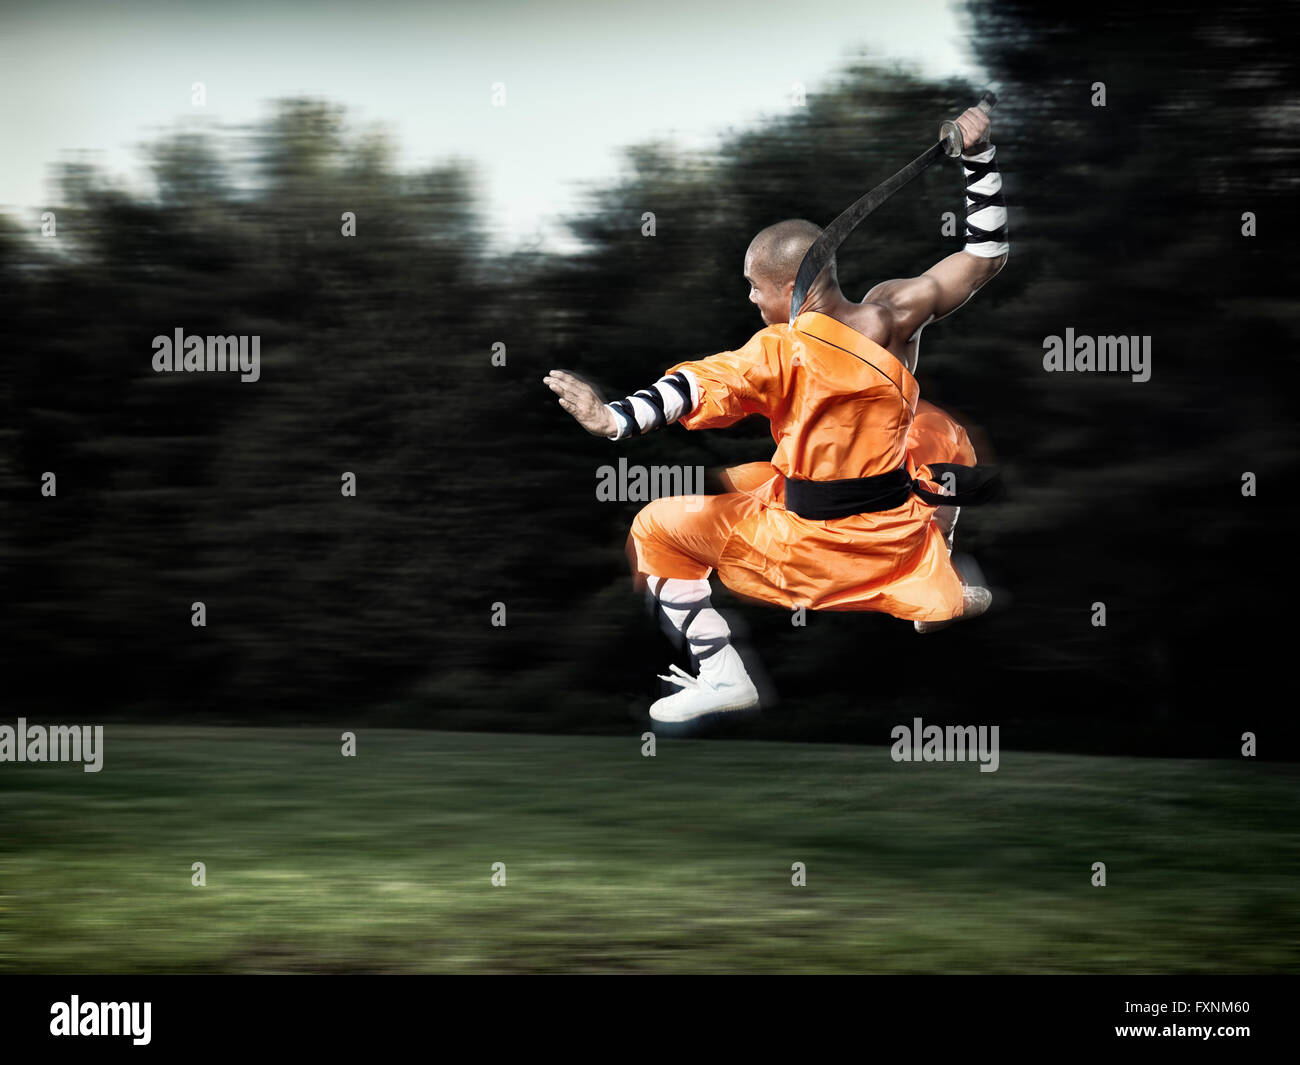 Moine guerrier Shaolin en l'air saut avec une large épée Photo Stock